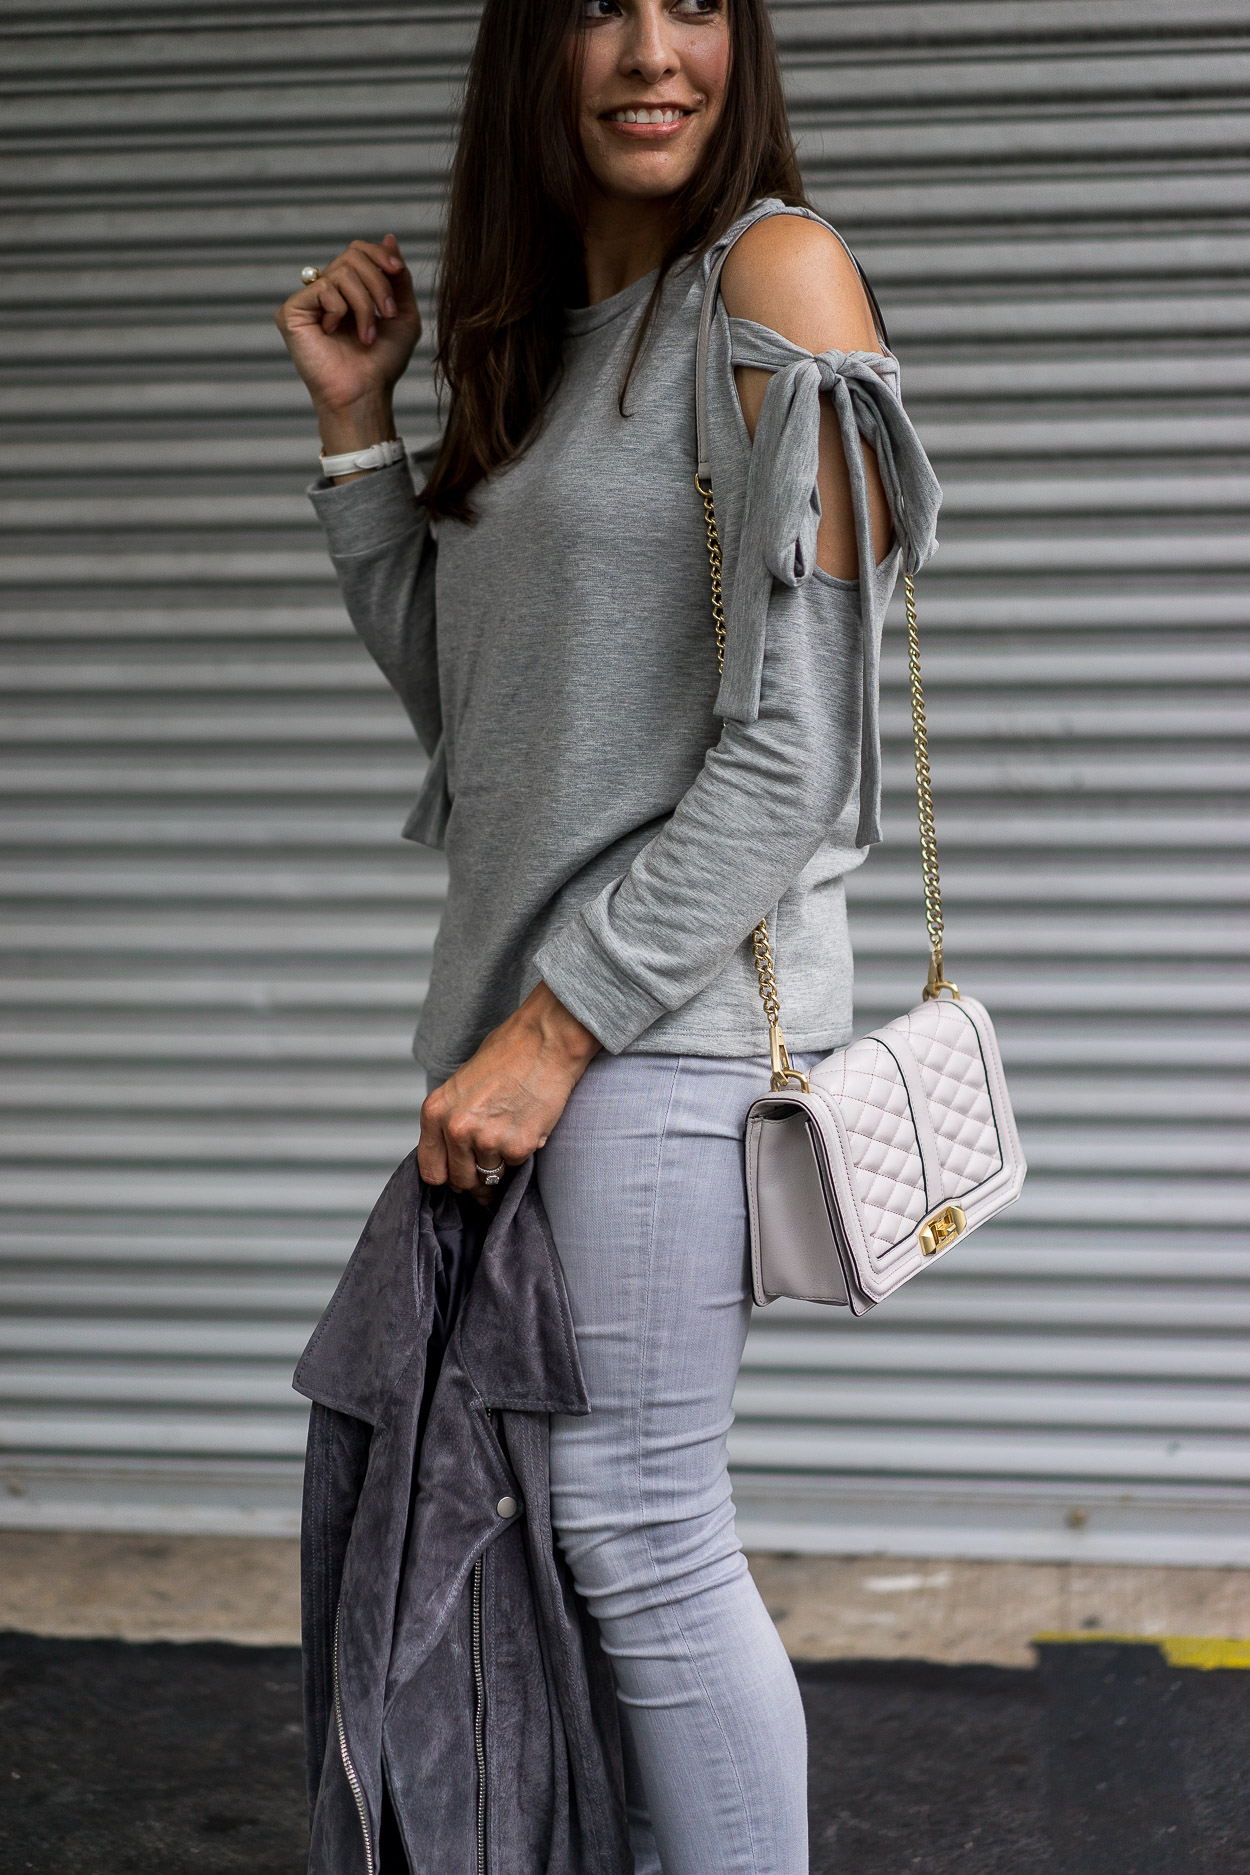 Stock up on a cozy grey sweater like this Pleione tie sleeve sweater from the Nordstrom Anniversary sale that ends today